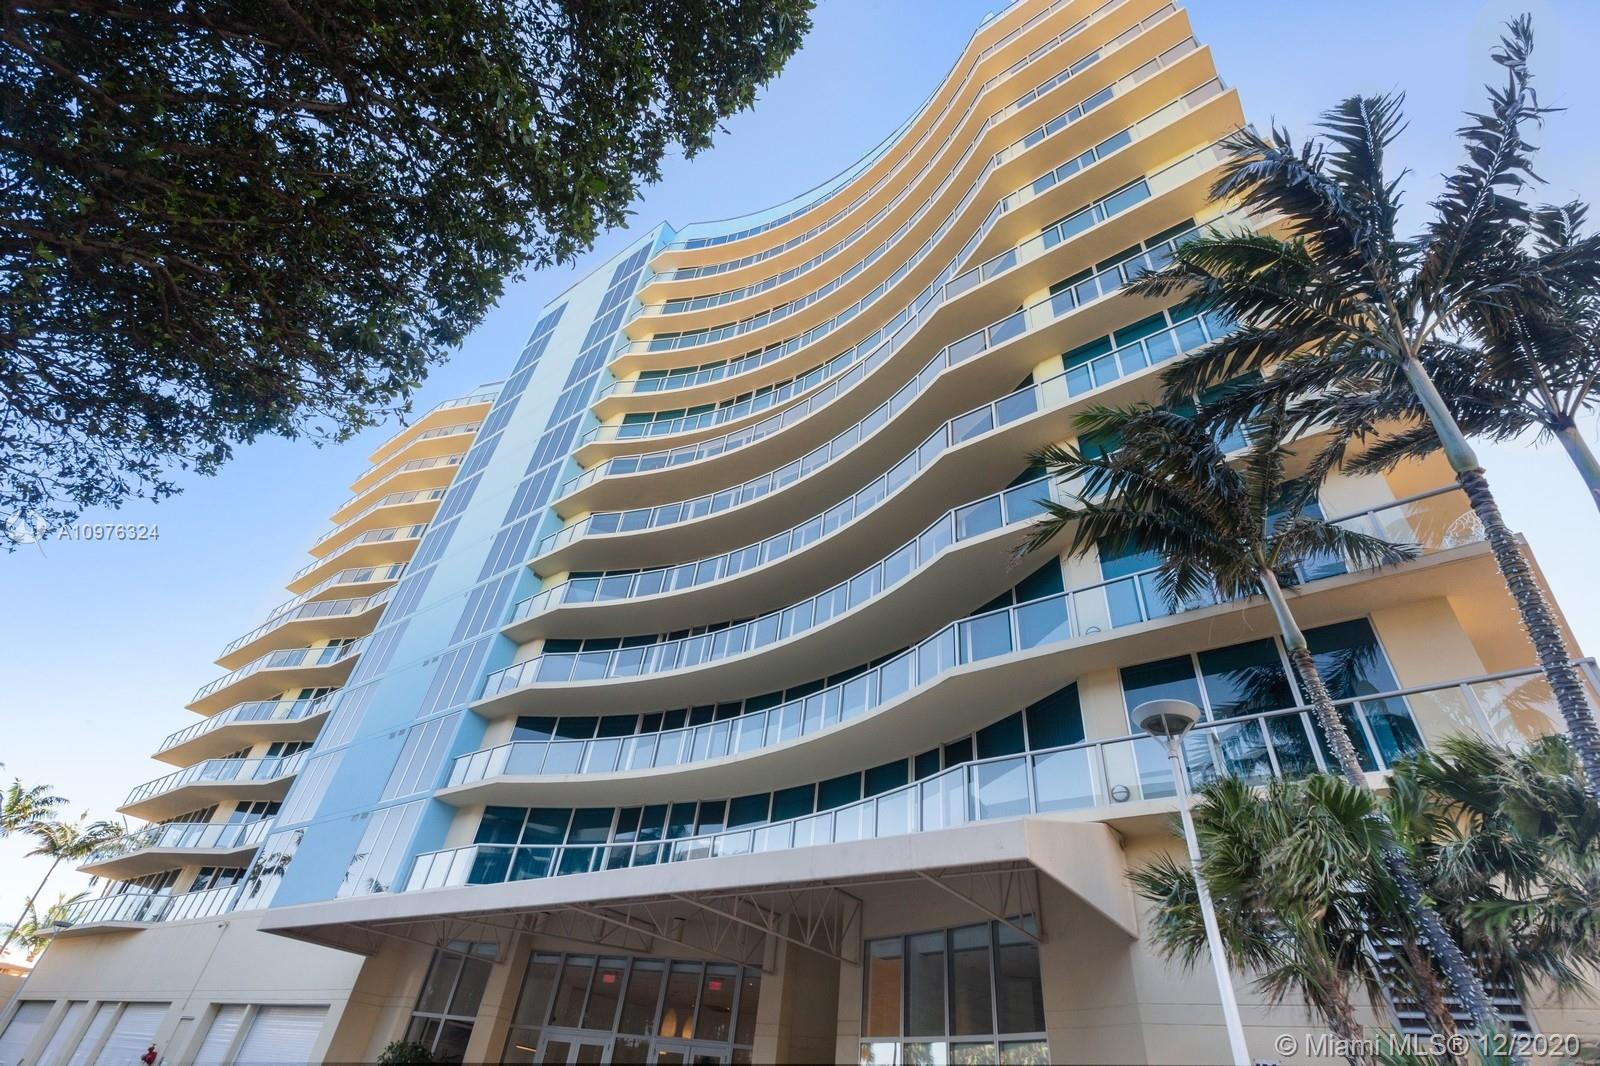 Coconut Grove, 1200 Holiday Dr Unit 103, Fort Lauderdale, Florida 33316